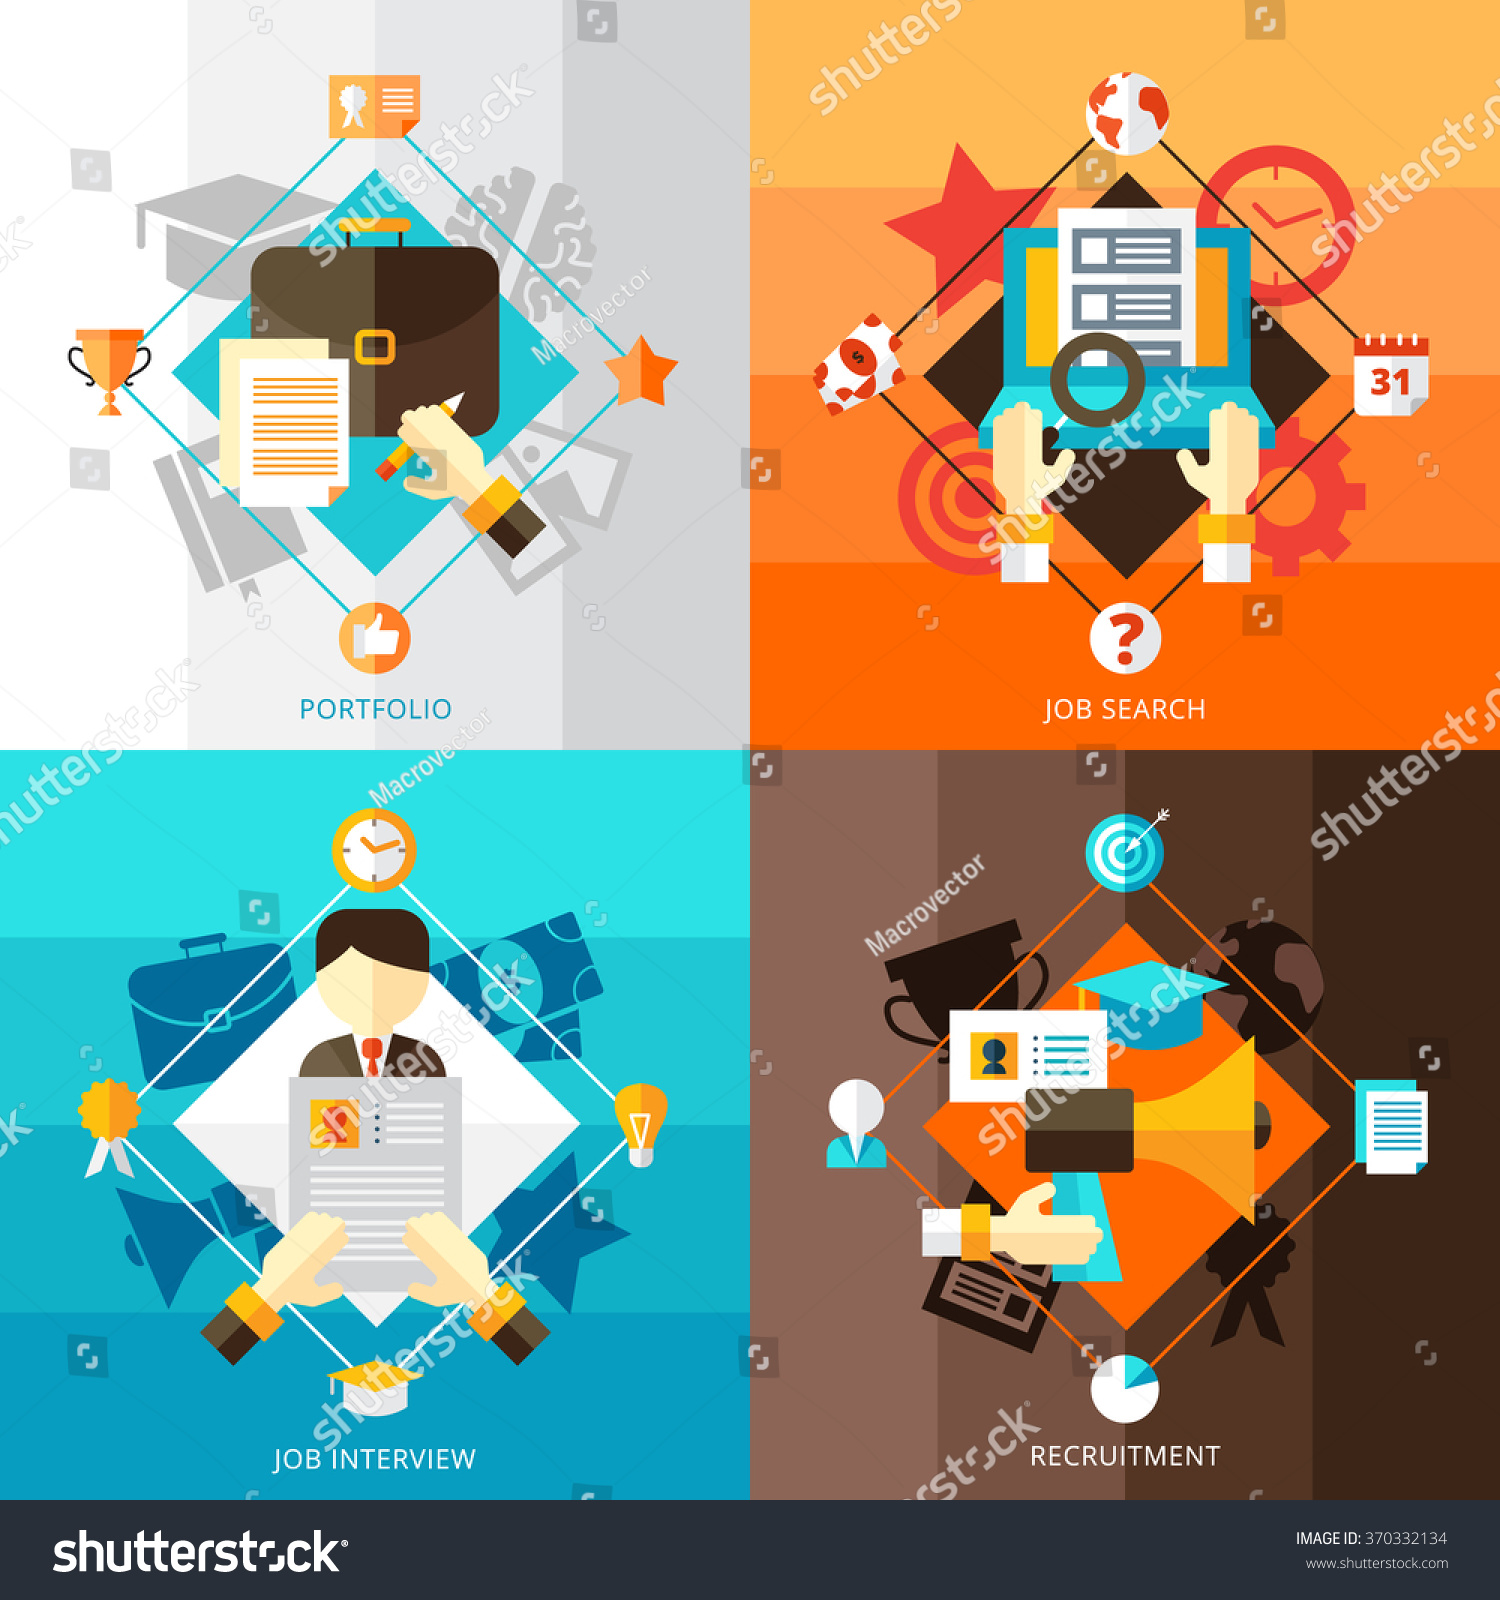 resume 2x2 flat design concept set stock vector 370332134 resume 2x2 flat design concept set of portfolio job search interview and recruitment compositions vector illustration